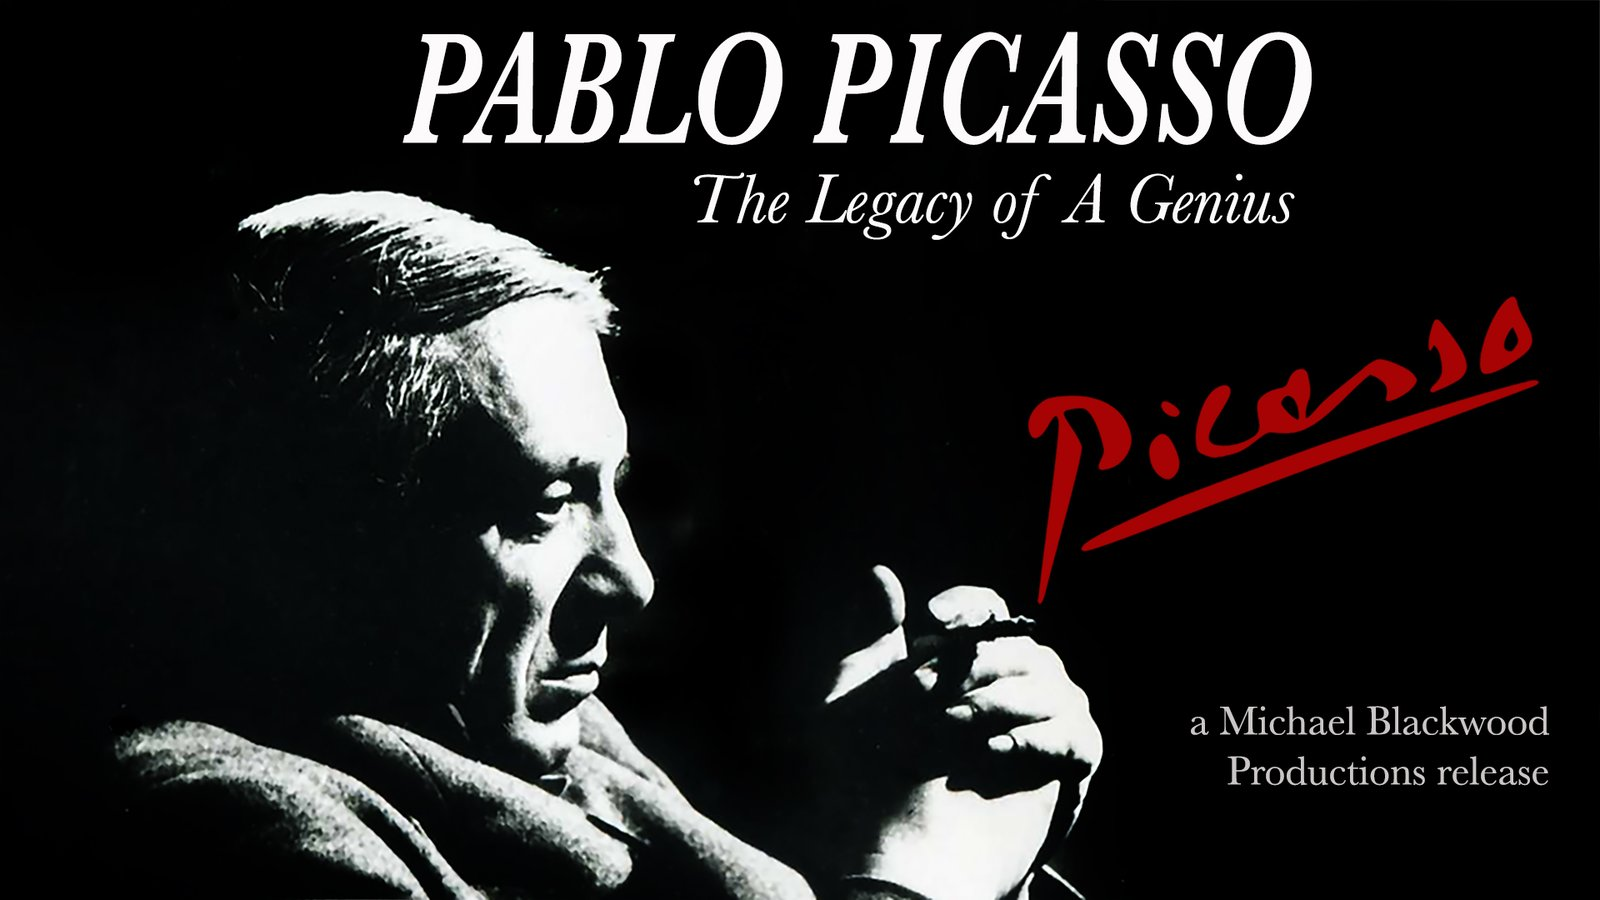 Pablo Picasso:The Legacy of a Genius